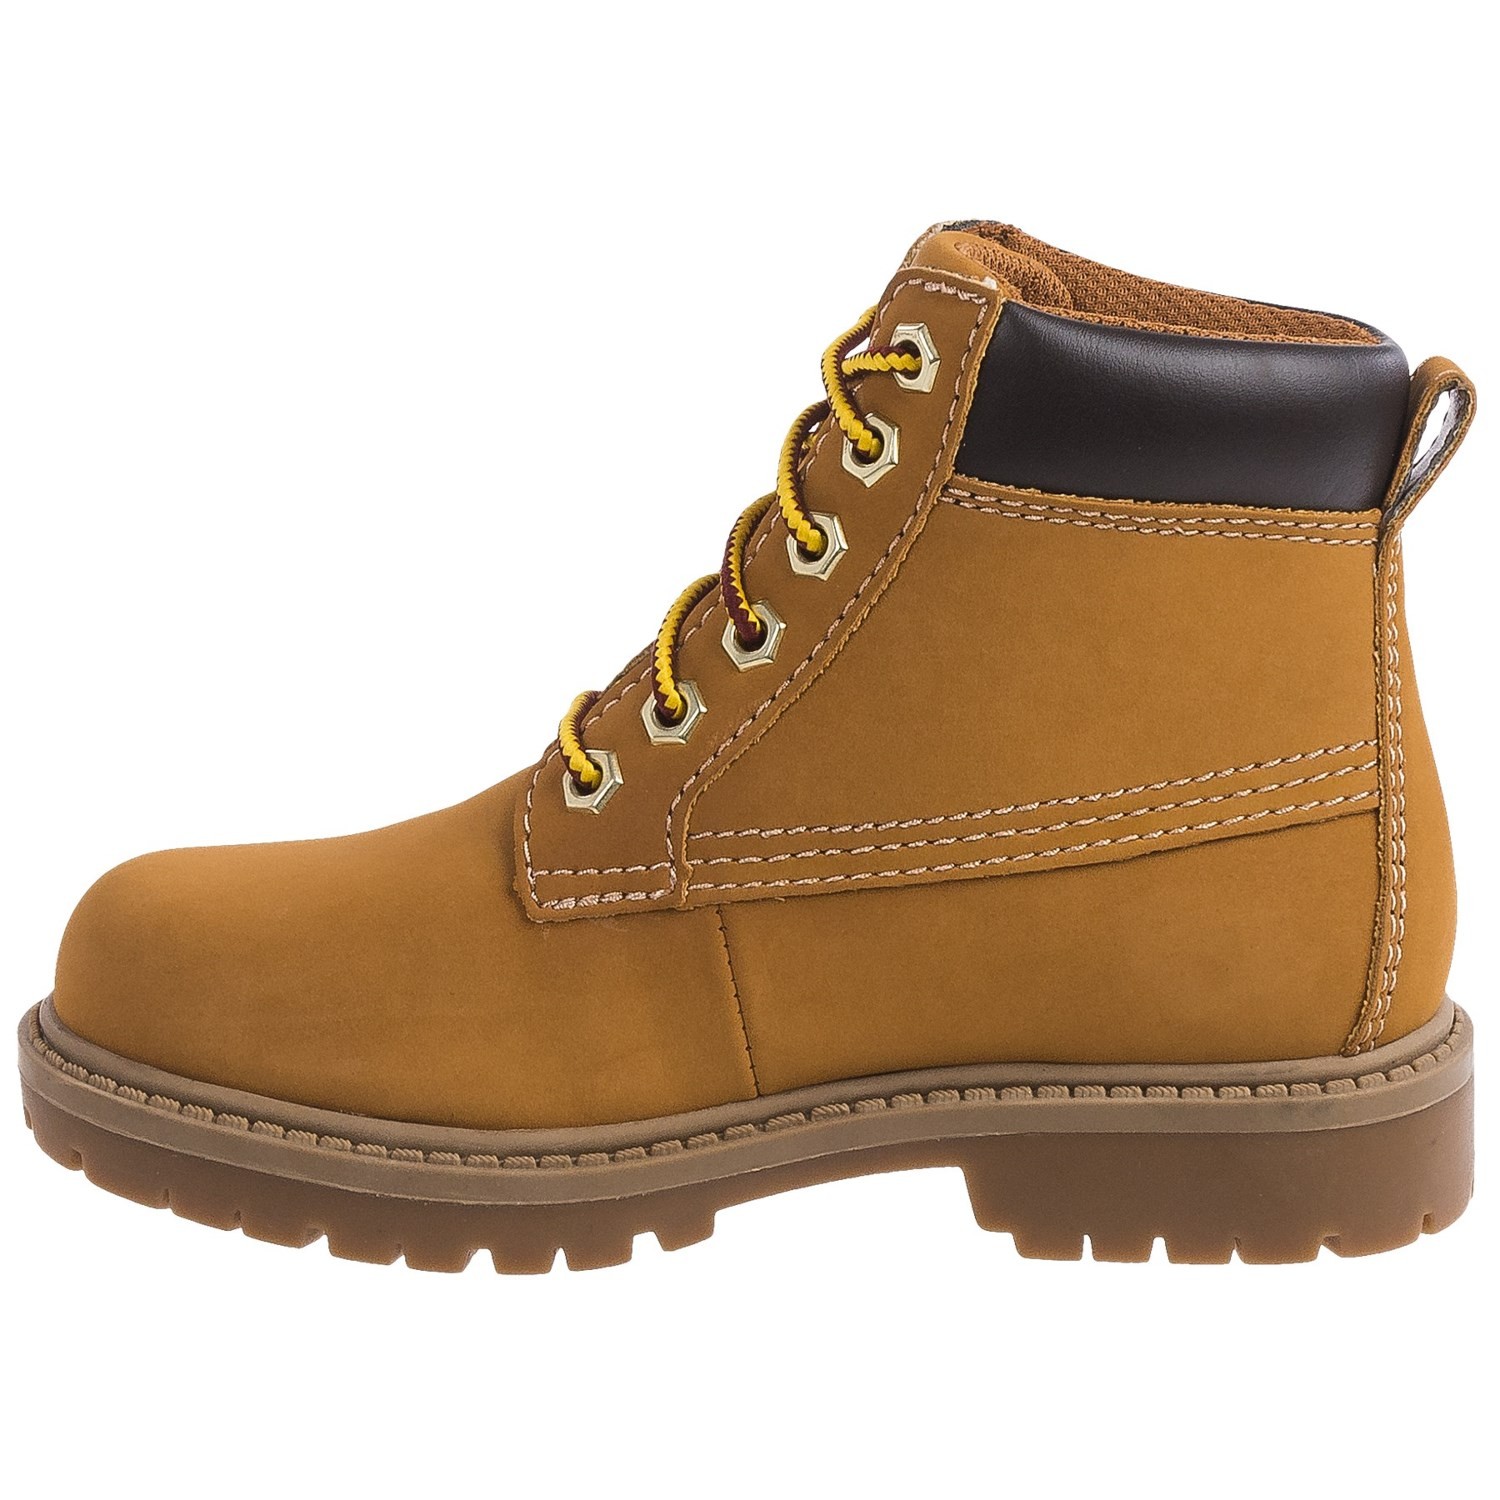 Eddie Bauer Work Boots (For Big Boys) - Save 44%